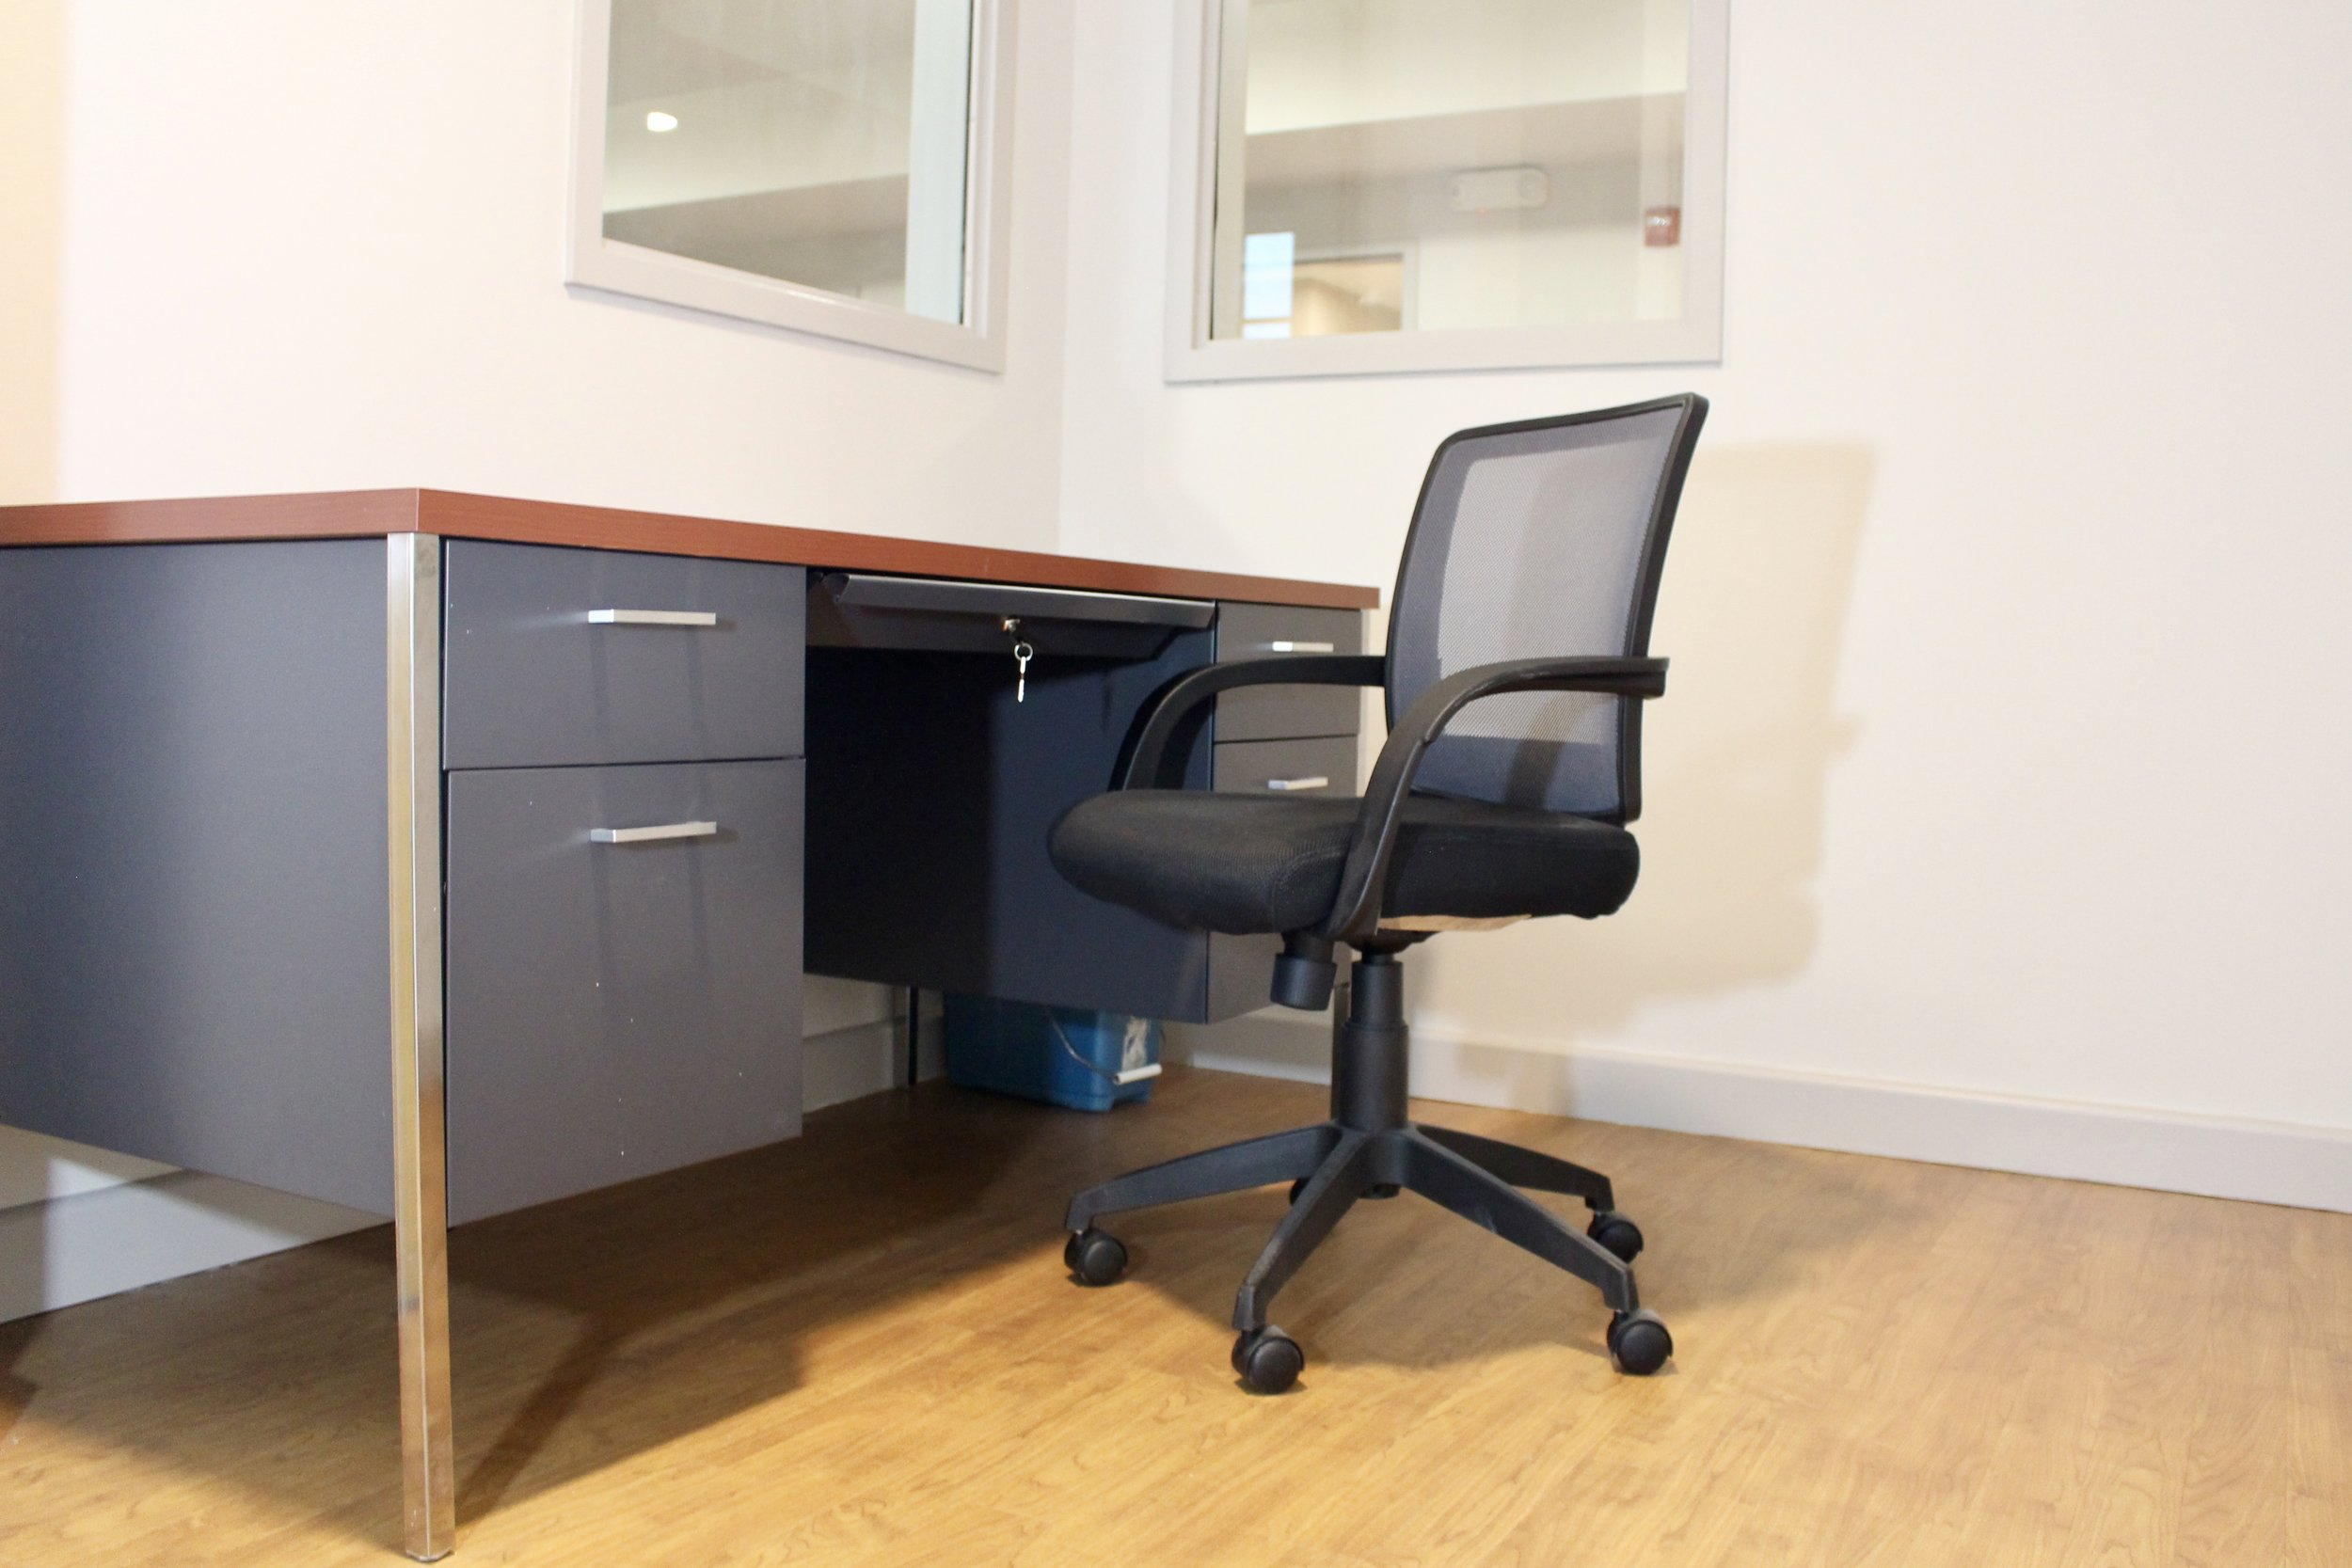 Hon Desk with Task Chair